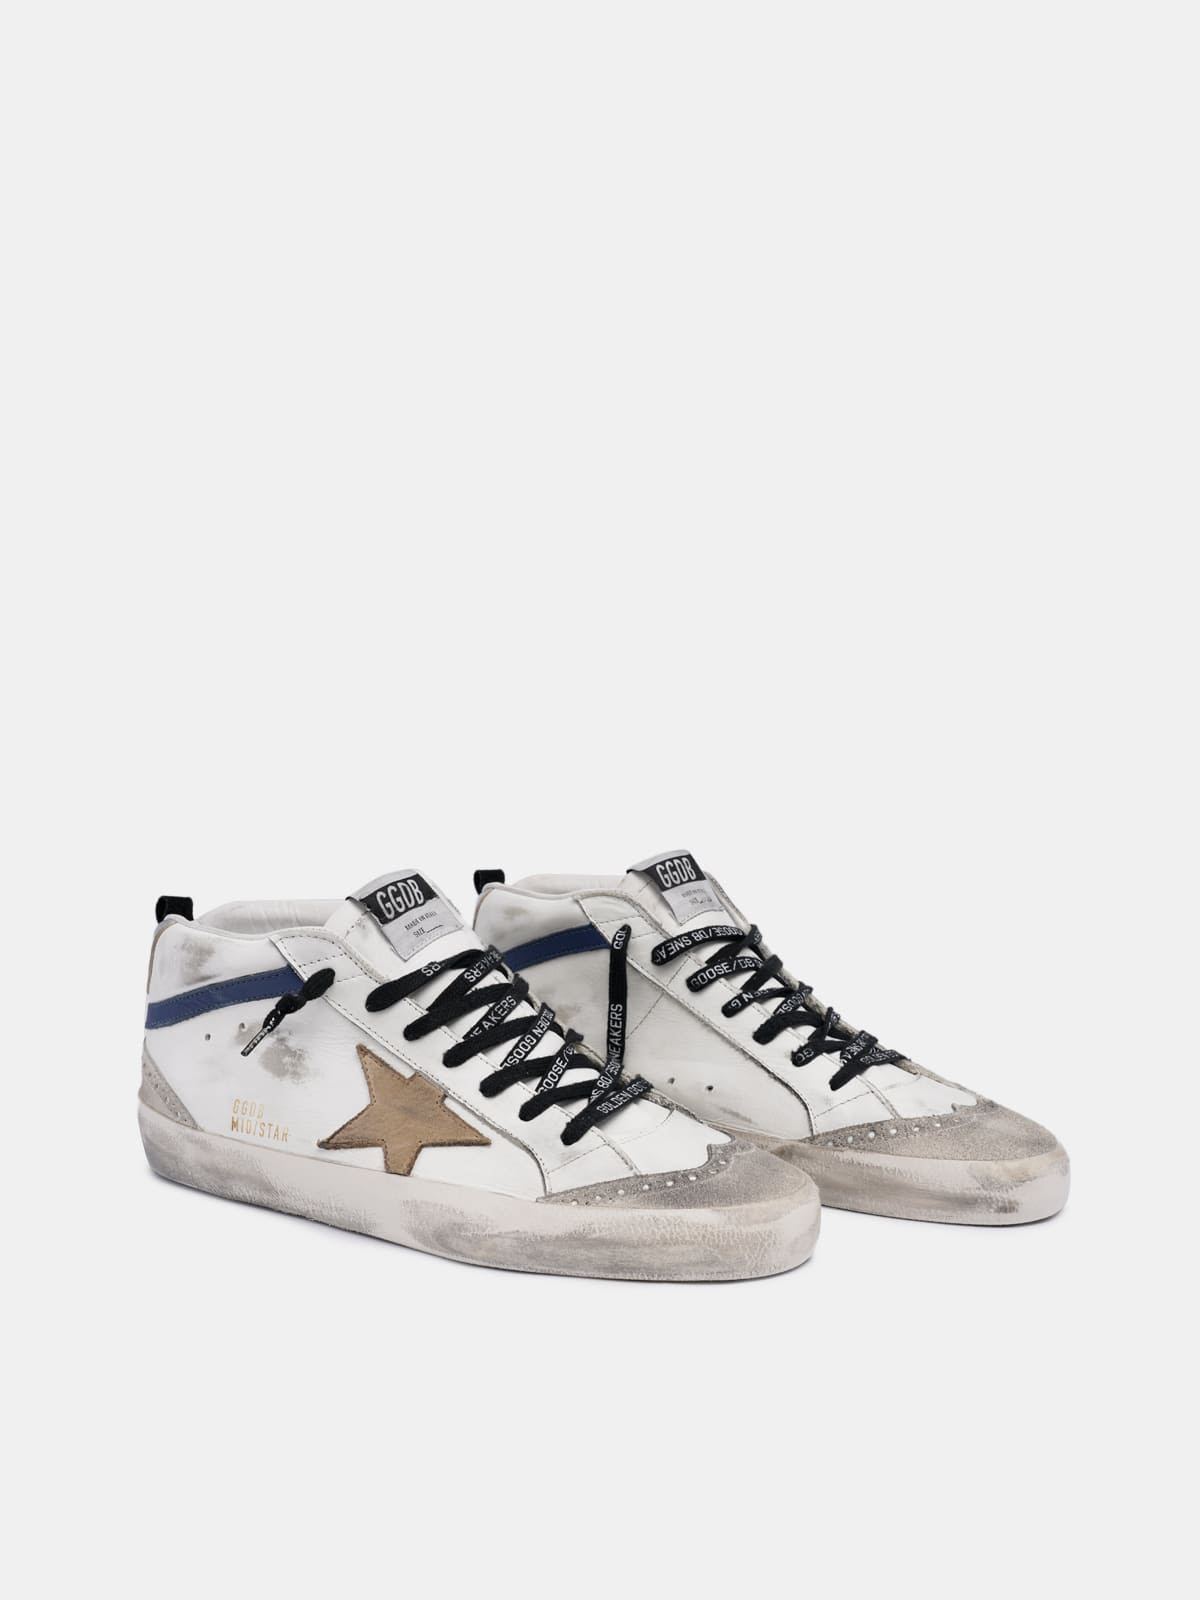 White Mid Star sneakers with beige star